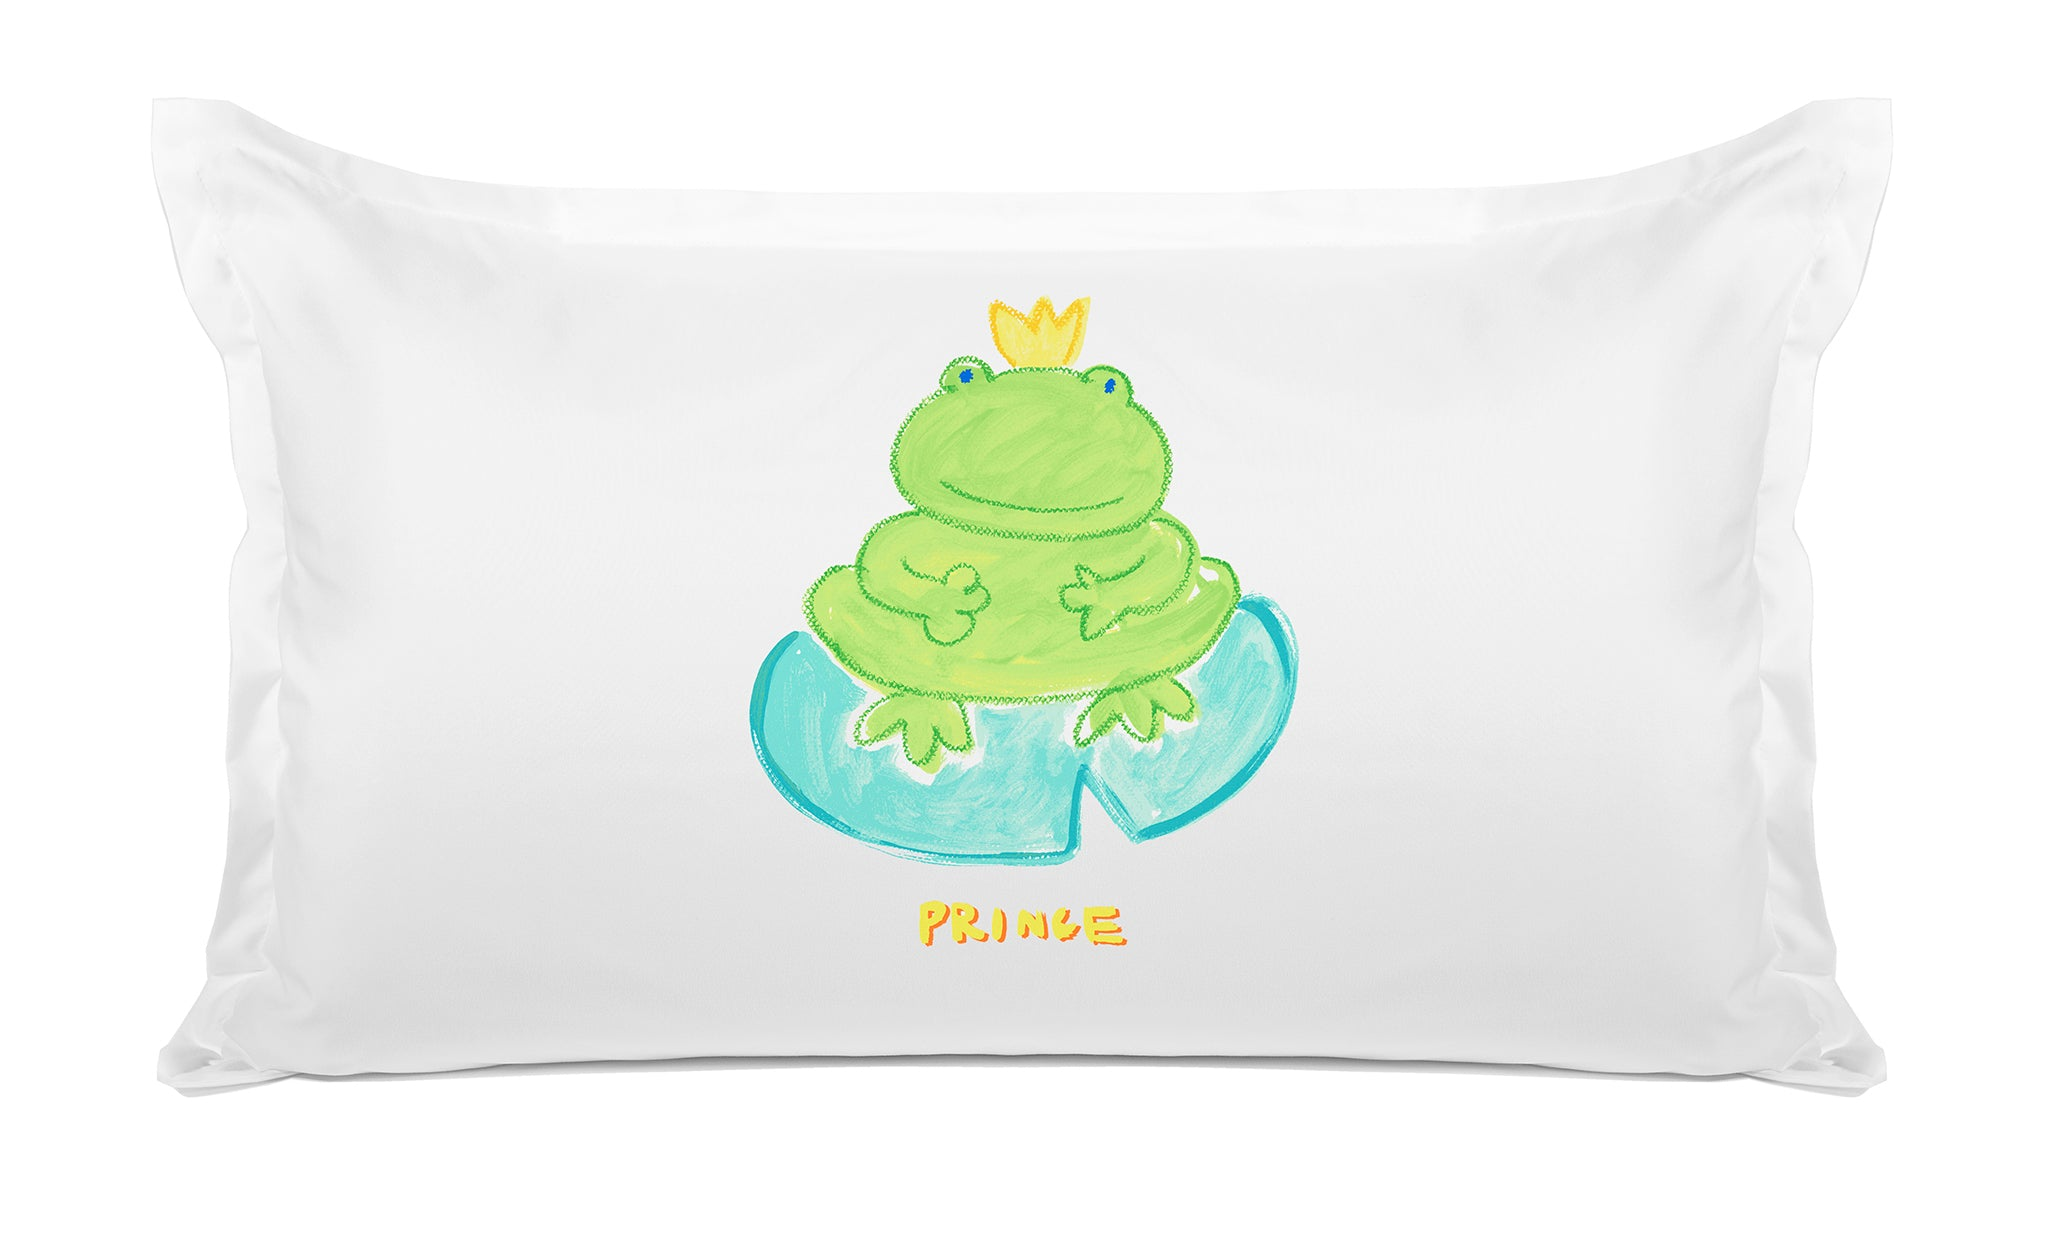 Prince Frog - Personalized Kids Pillowcase Collection